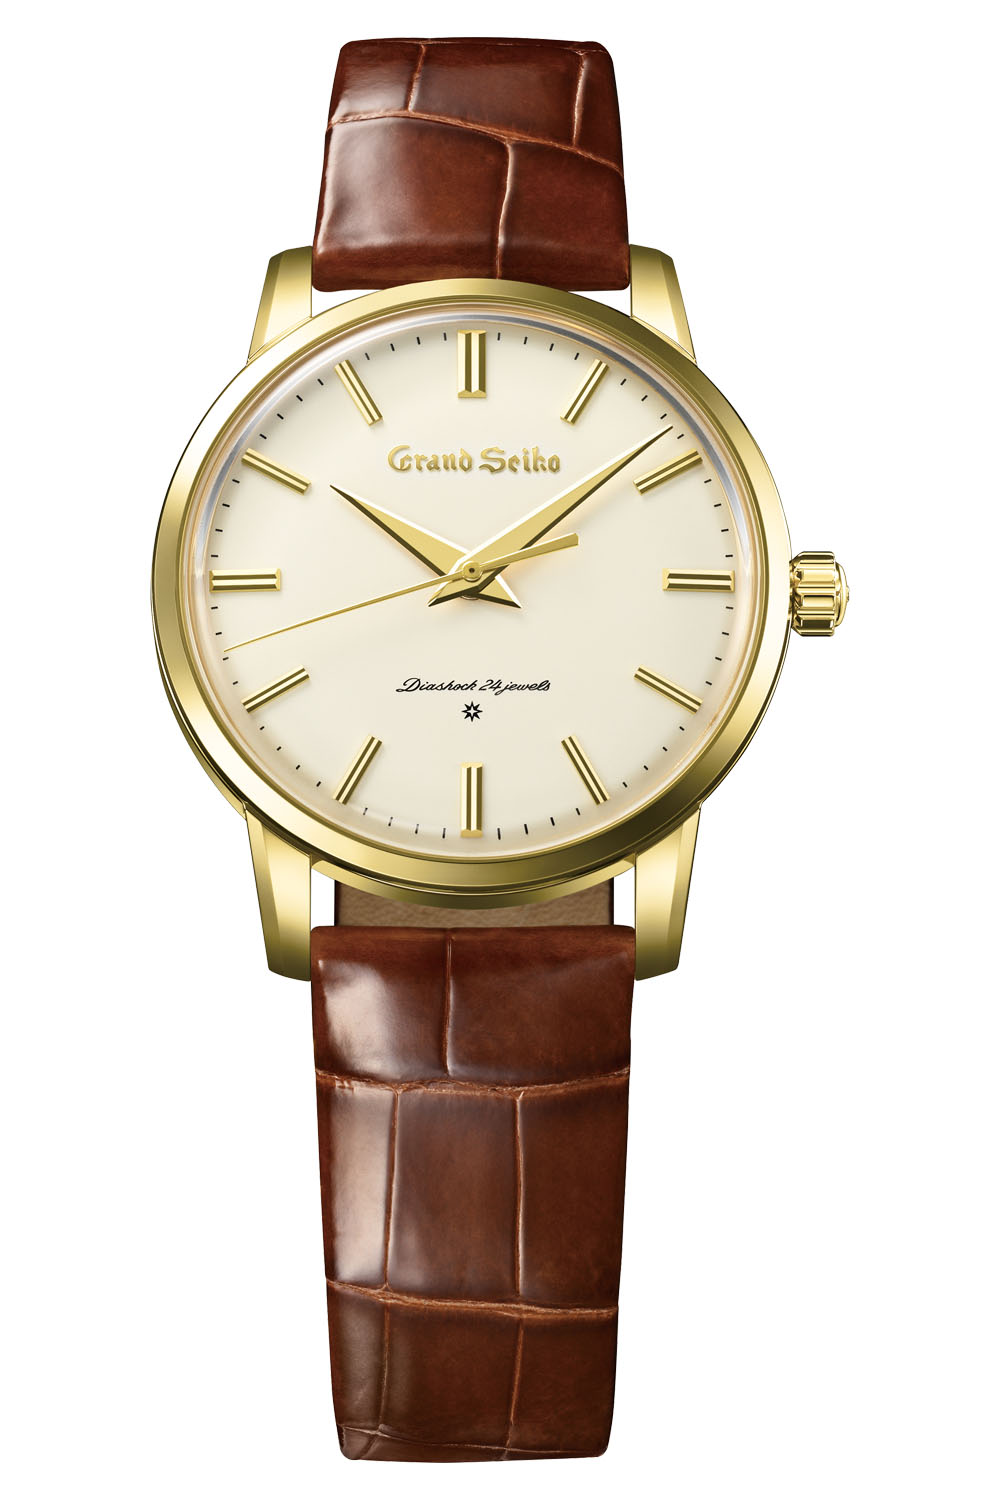 Grand Seiko 60th Anniversary Re-Creation of the first 1960 - SBGW258